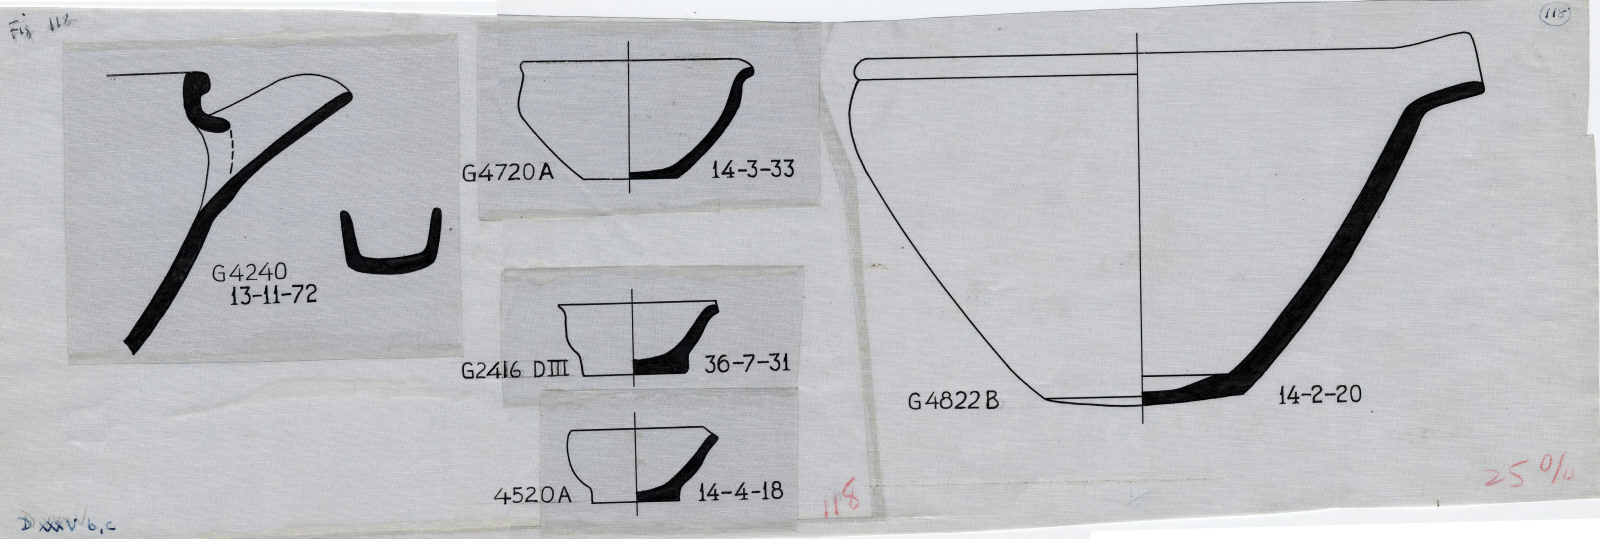 Drawings: Pottery from G 2416, Shaft D; G 4240; G 4520, Shaft B (mislabeled A); G 4720, Shaft A; G 4822, Shaft B